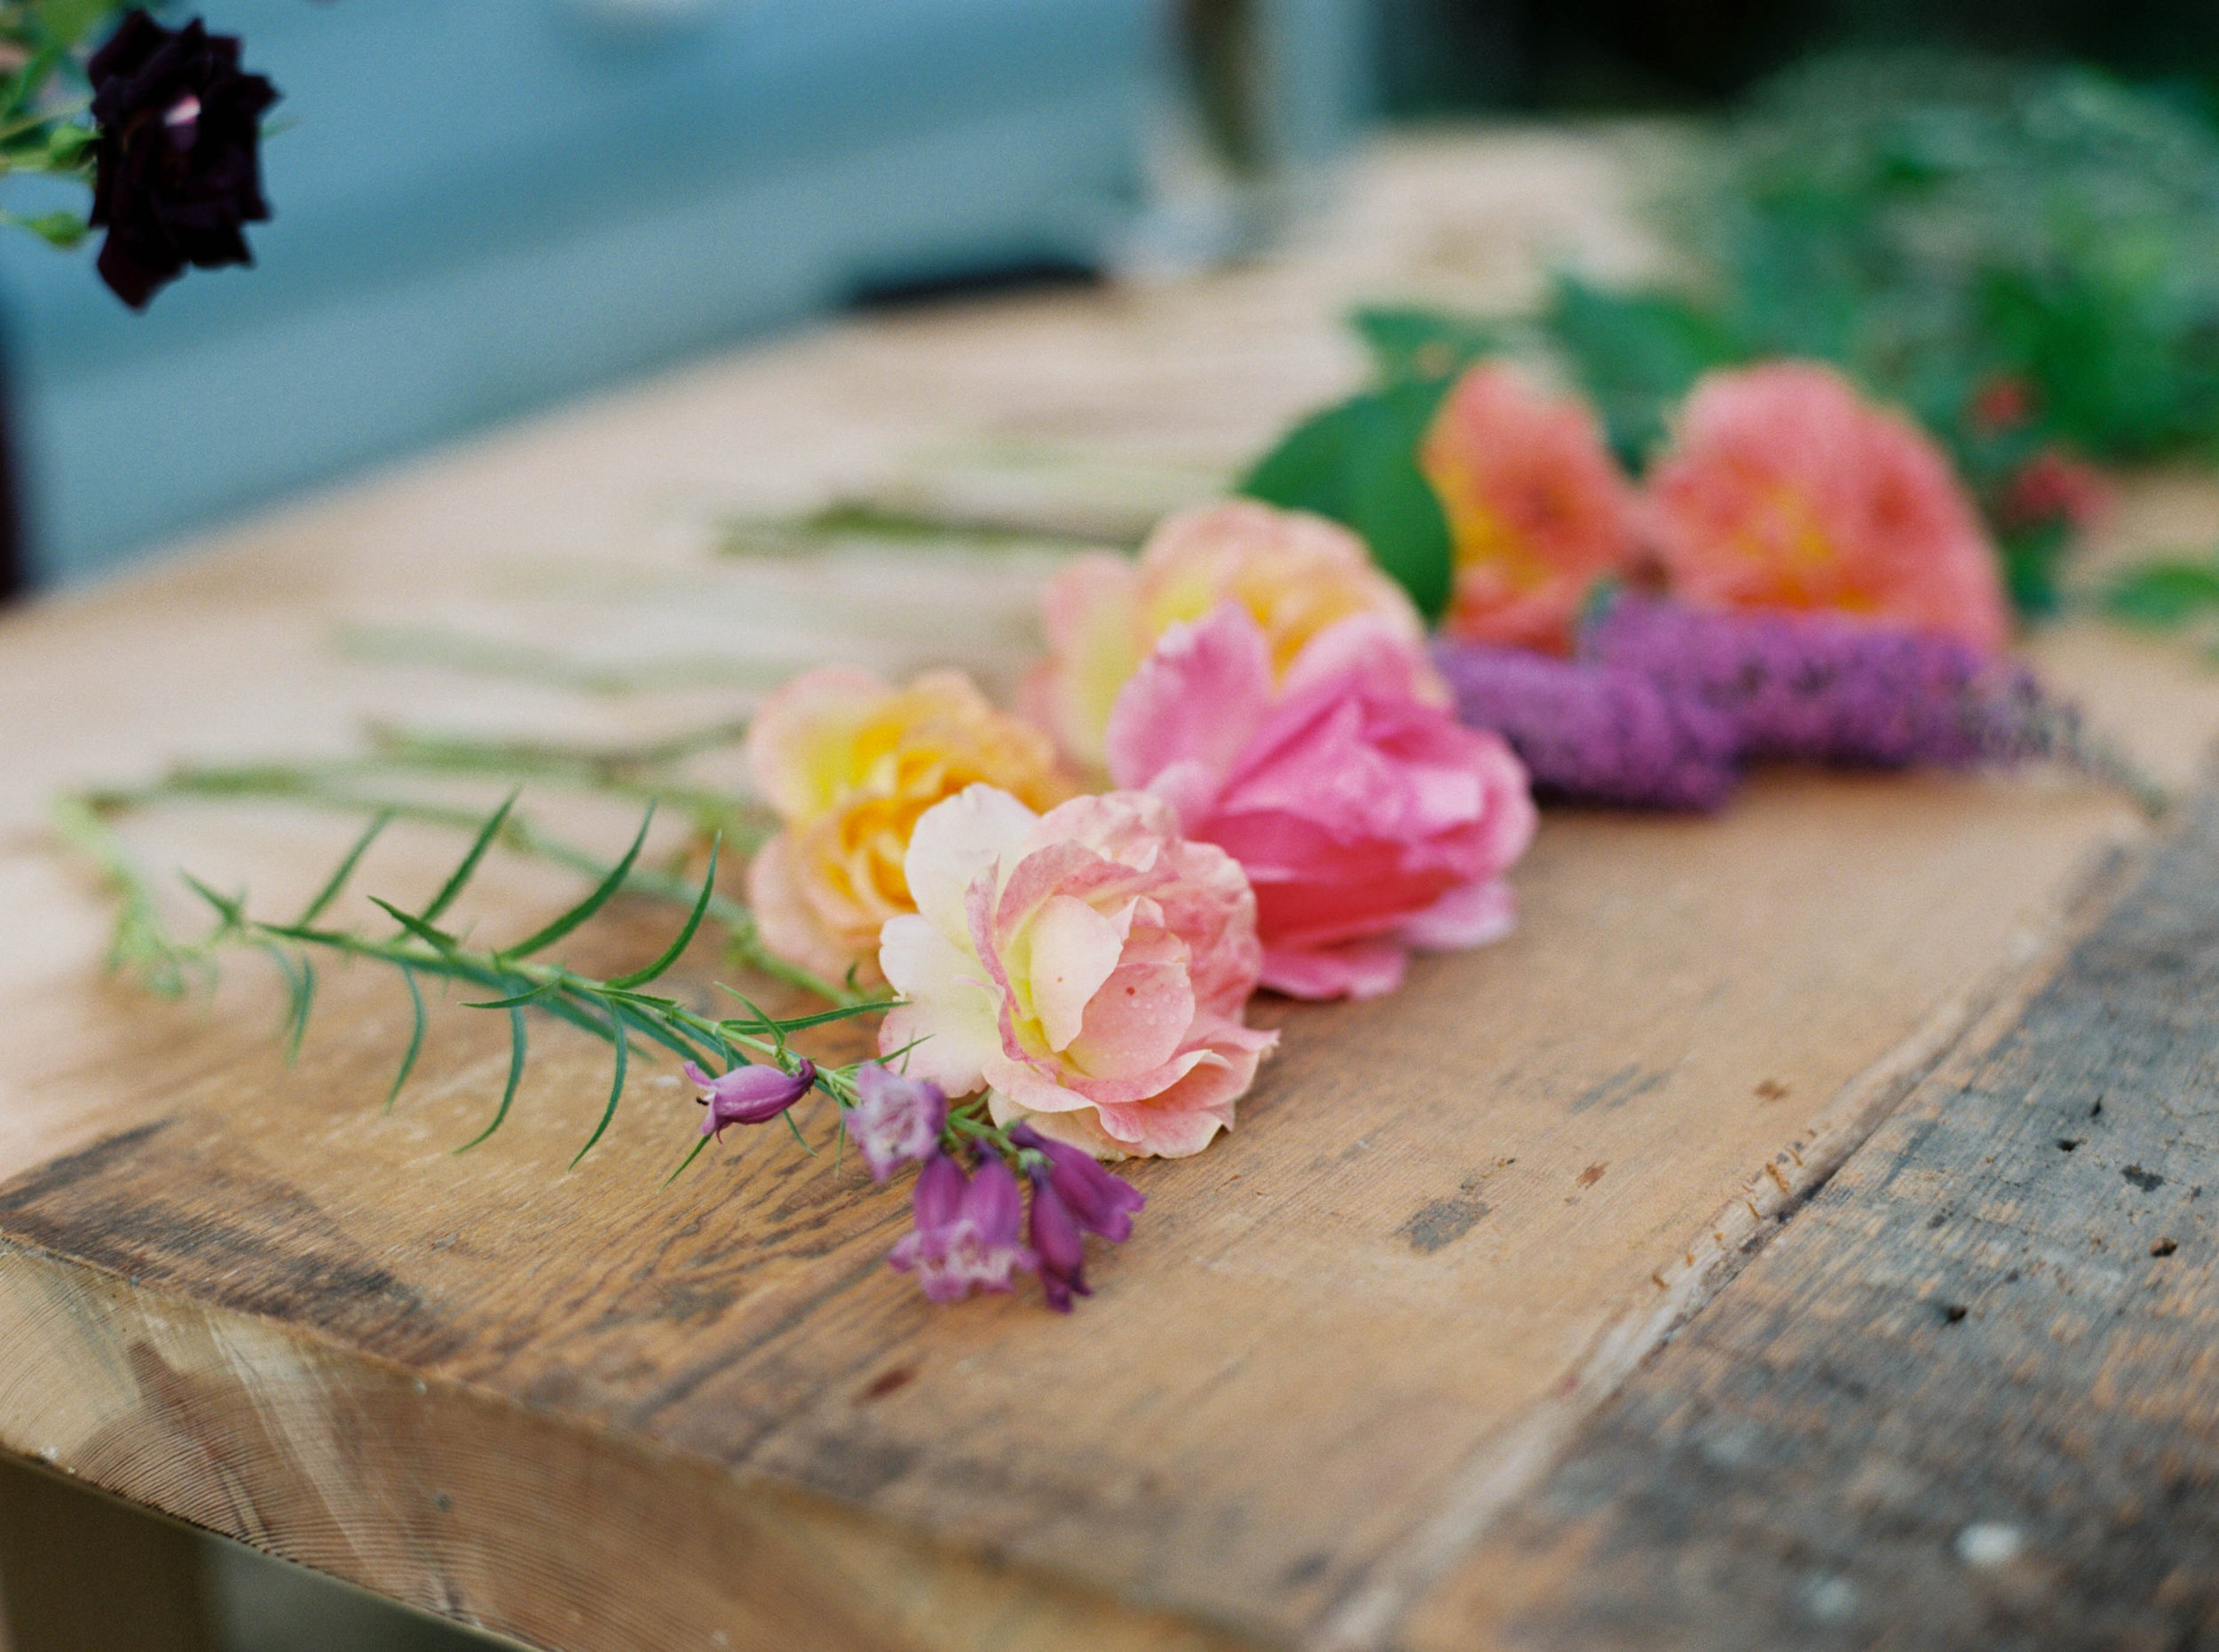 flowers to make a foraged flower bouquet for wedding